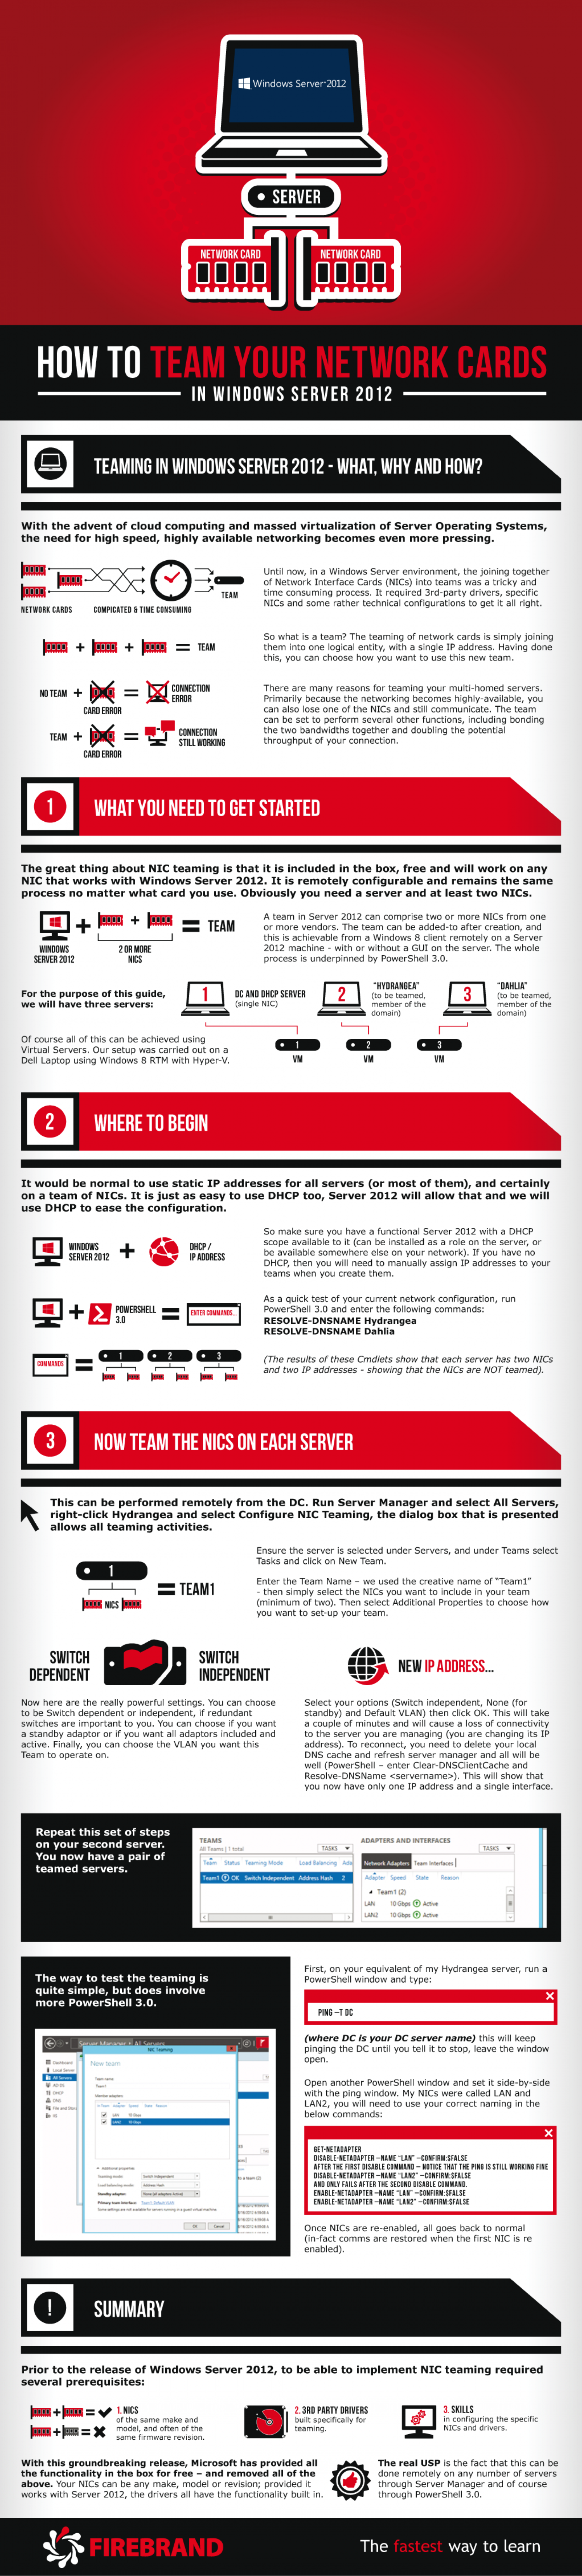 NIC Teaming in Windows Server 2012 Infographic